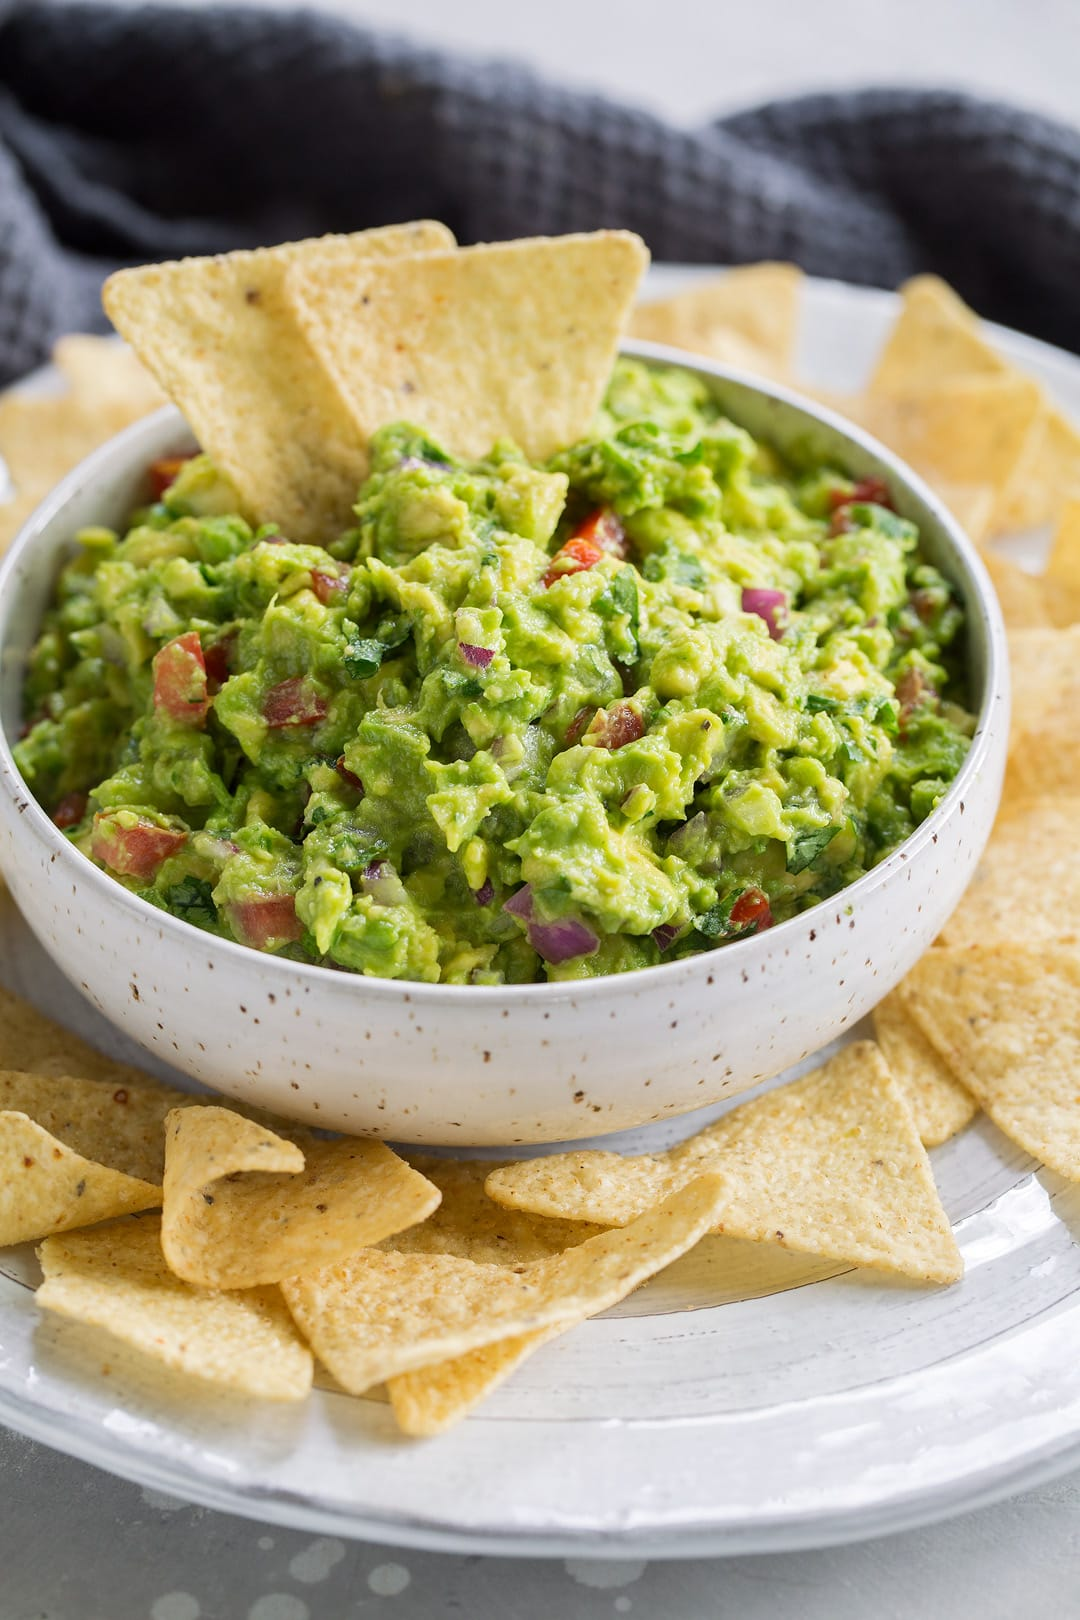 Guacamole Recipe Step By Step Photos Cooking Classy